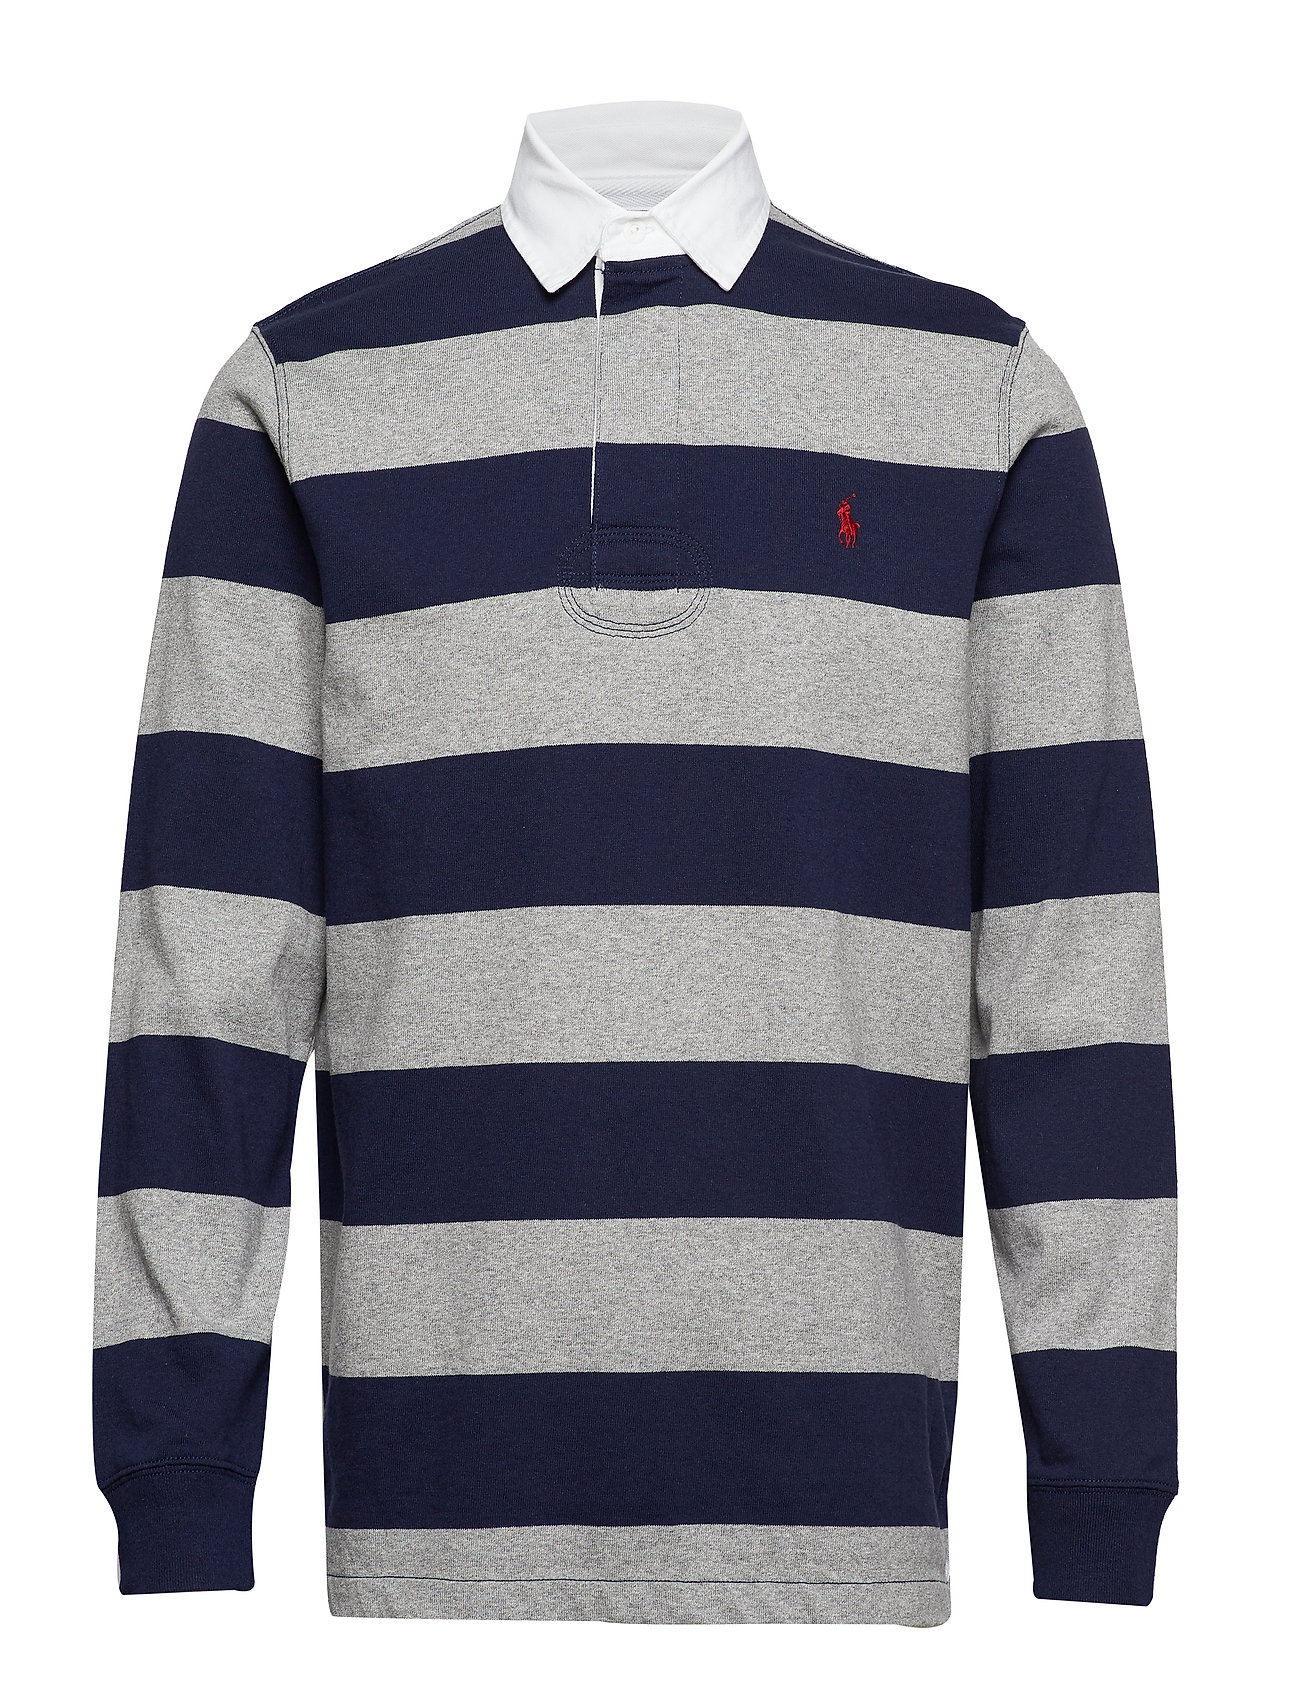 Lauren Heather Rugby frPolo Iconic The Ralph Shirtleague R5ALj4